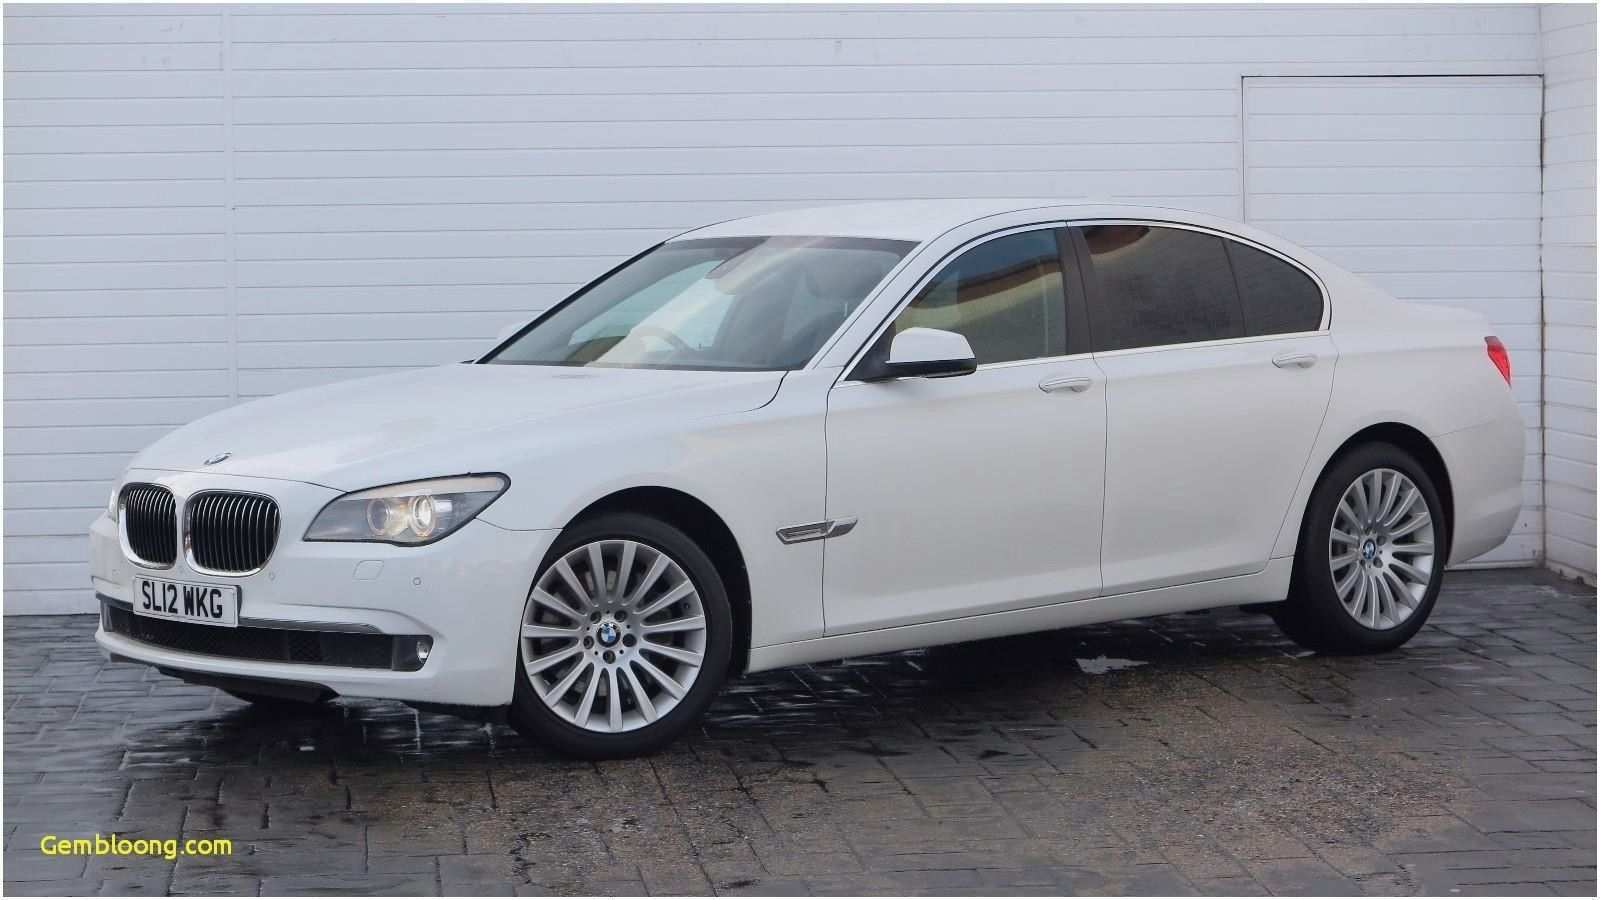 48 The 2020 BMW 7 Series Perfection New Specs And Review